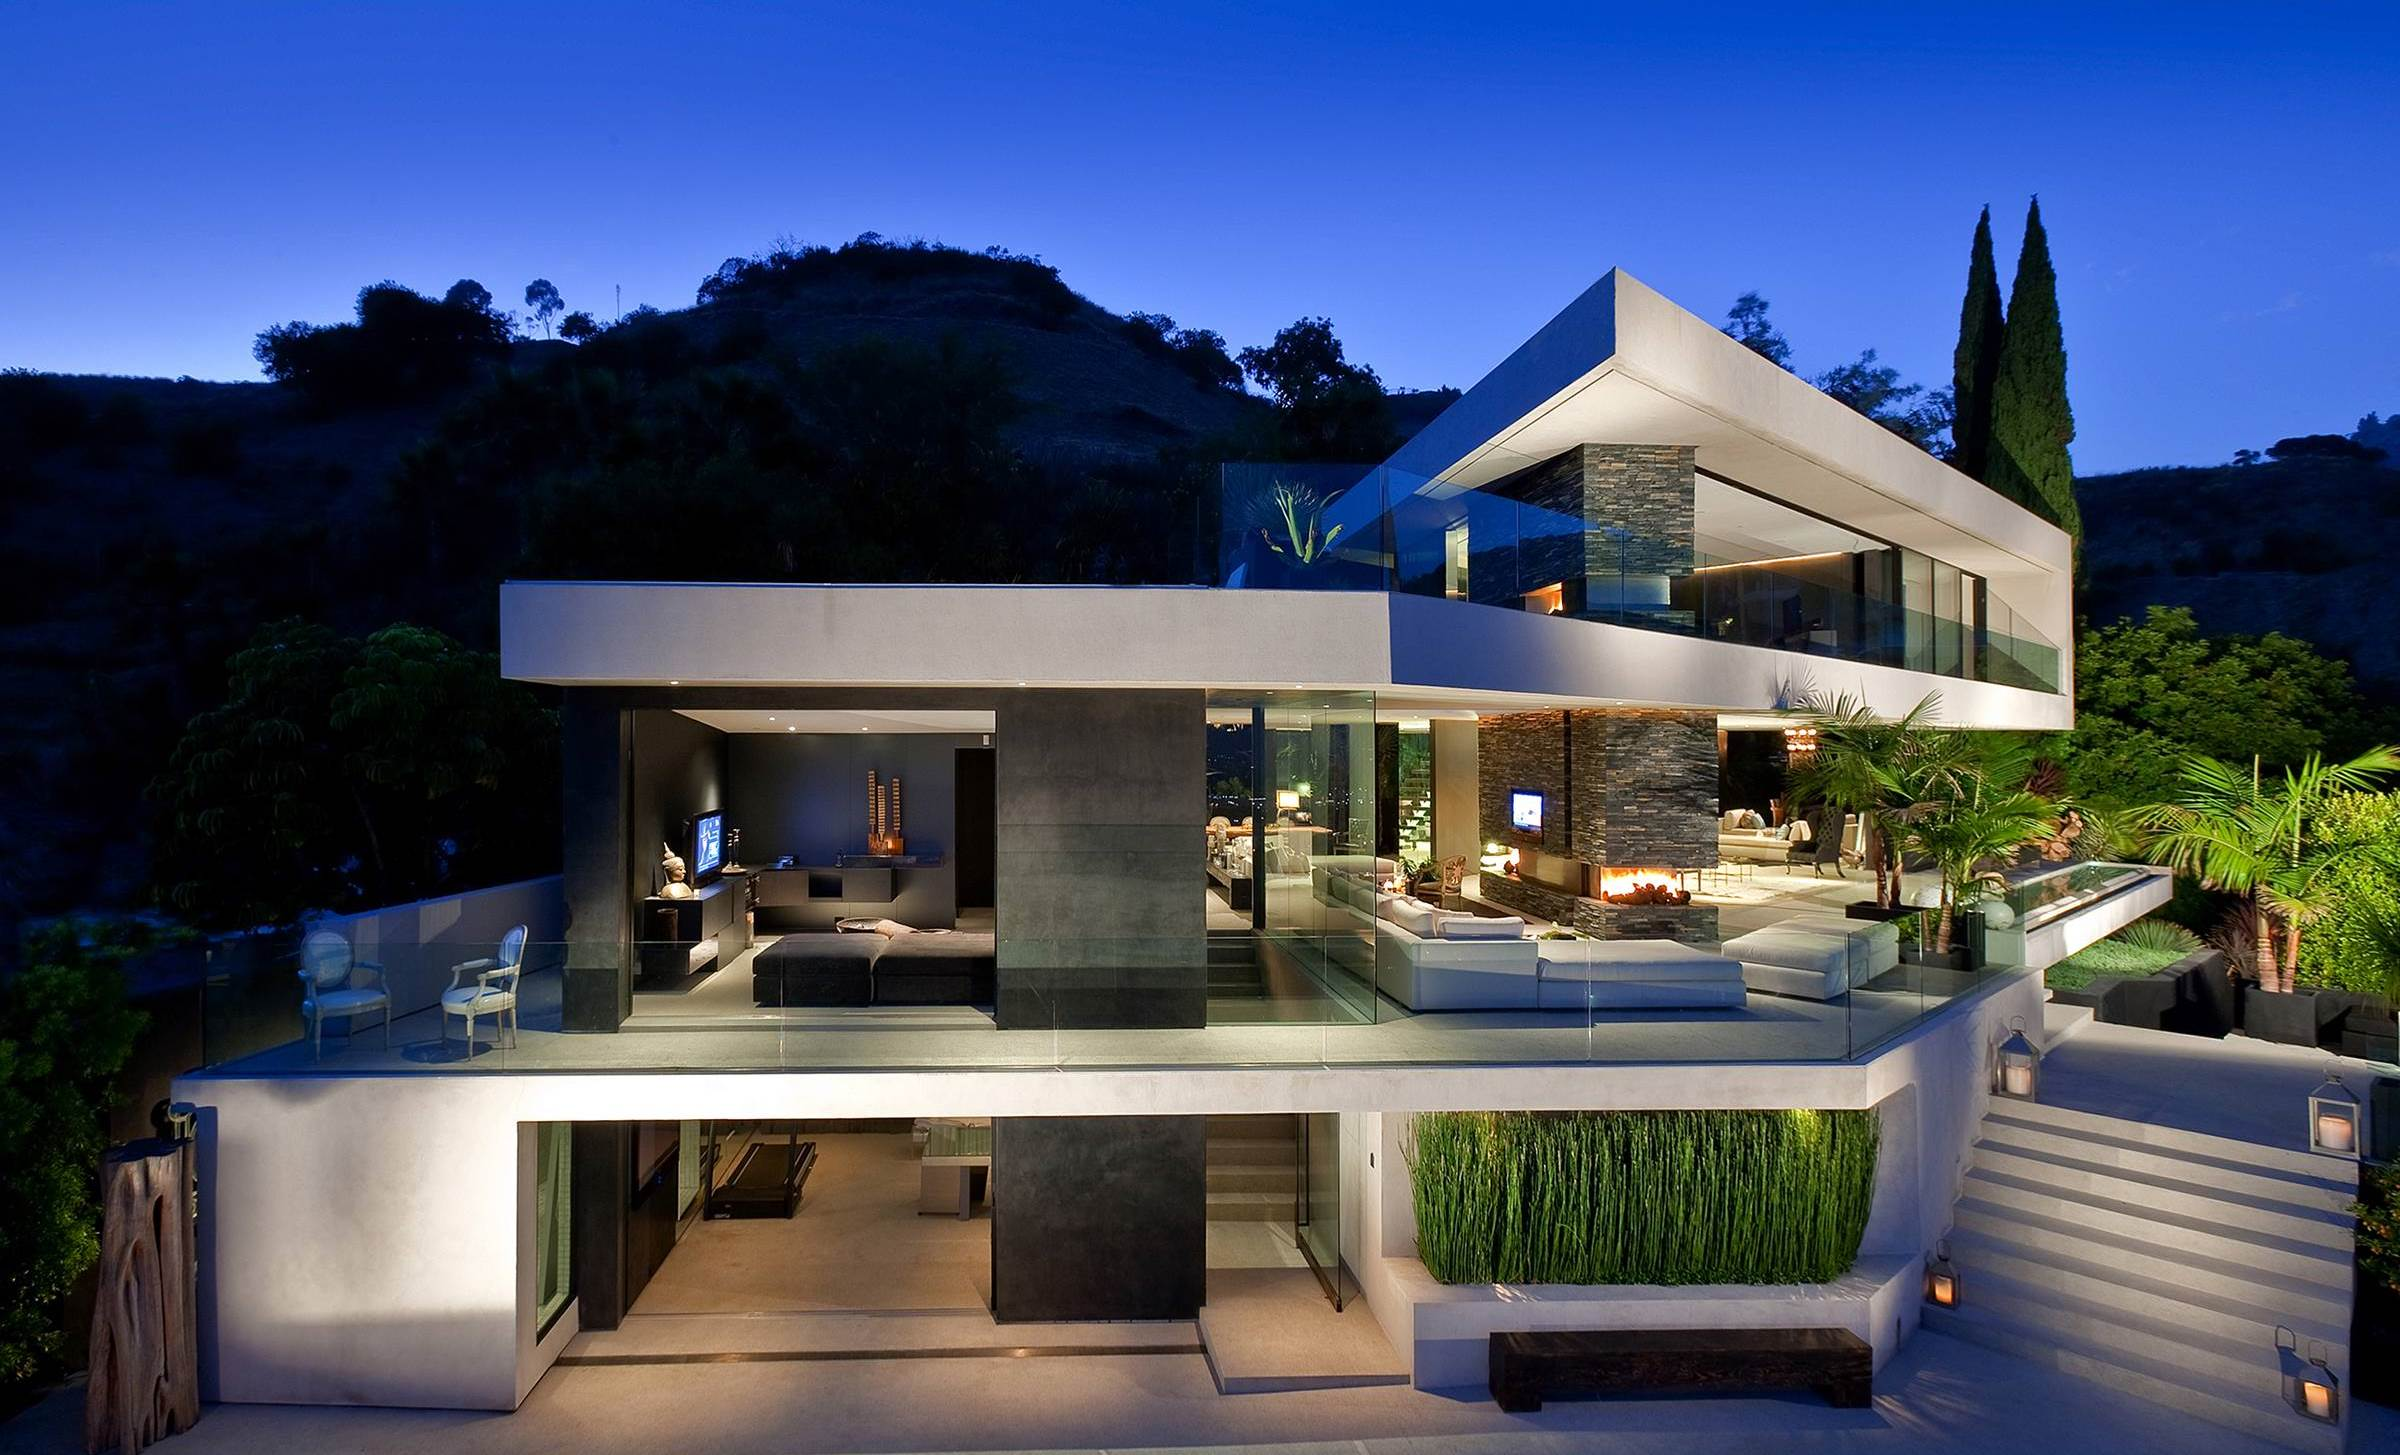 Fabulous Hollywood Hills Modern Home in Los Angeles by XTEN Architecture